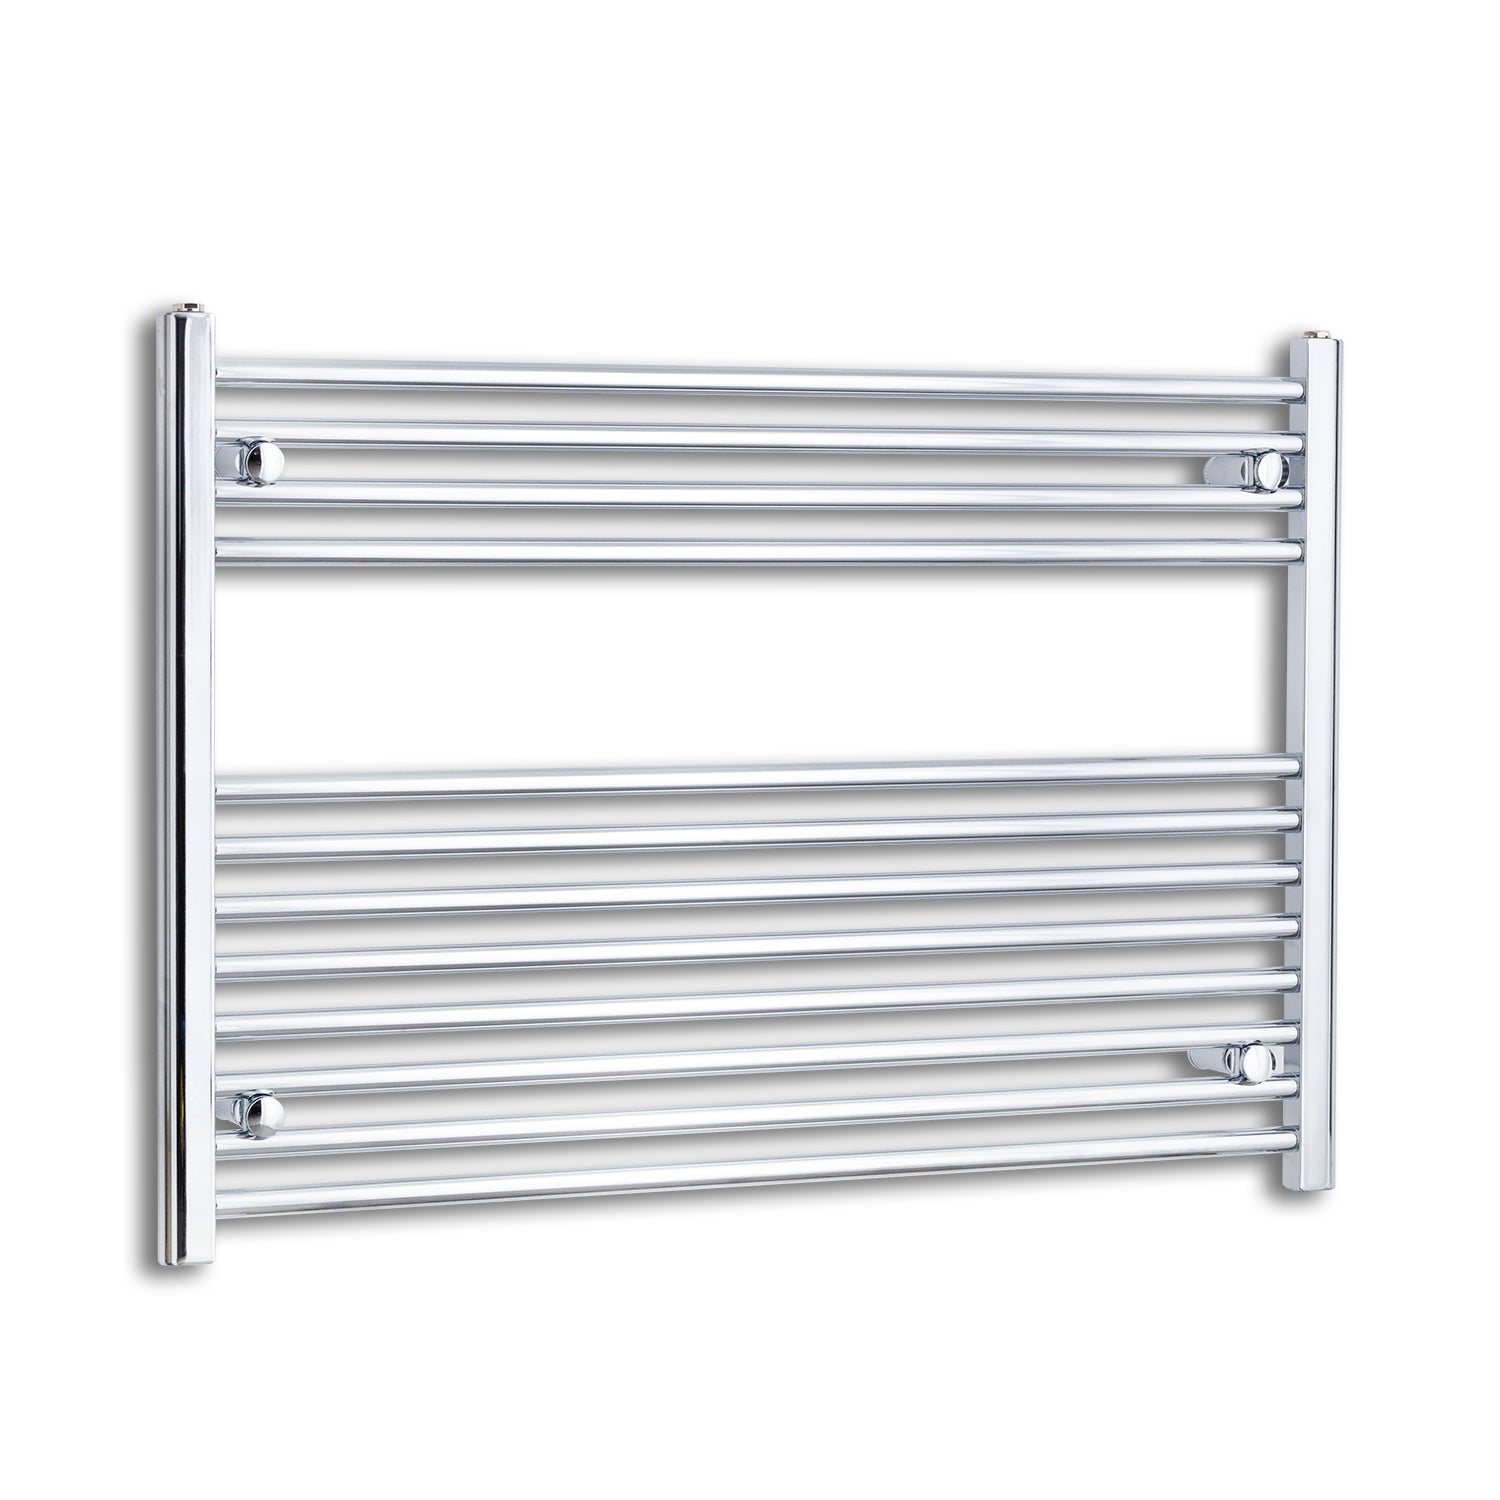 1000mm Wide 700mm High Flat Chrome Heated Towel Rail Radiator HTR,Towel Rail Only